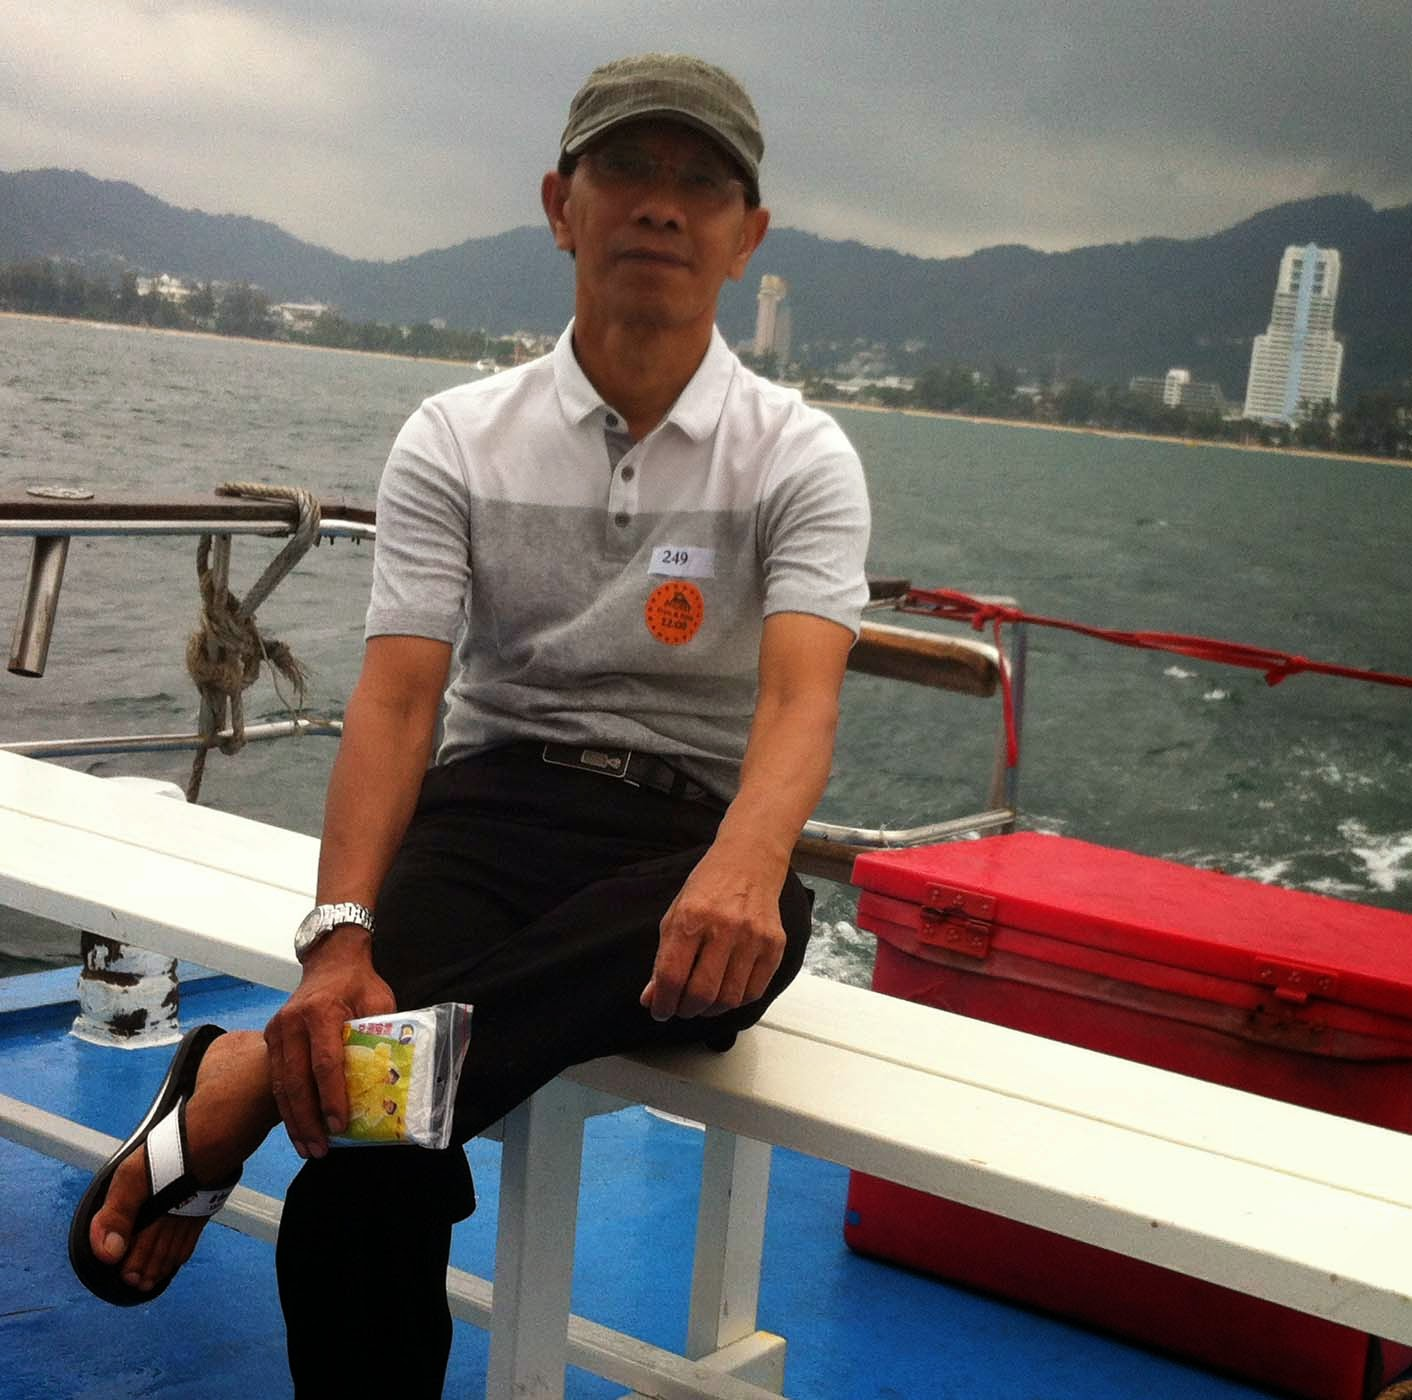 Superstar Libra Cruise Cambodia Tiket River Safari Plus Boat Ride Dewasa Adult Of Course No Visit To Phuket Is Complete Unless We Stop By At Patong Beach Well One Can Always Bum The Or Explore Norms And Shopping That